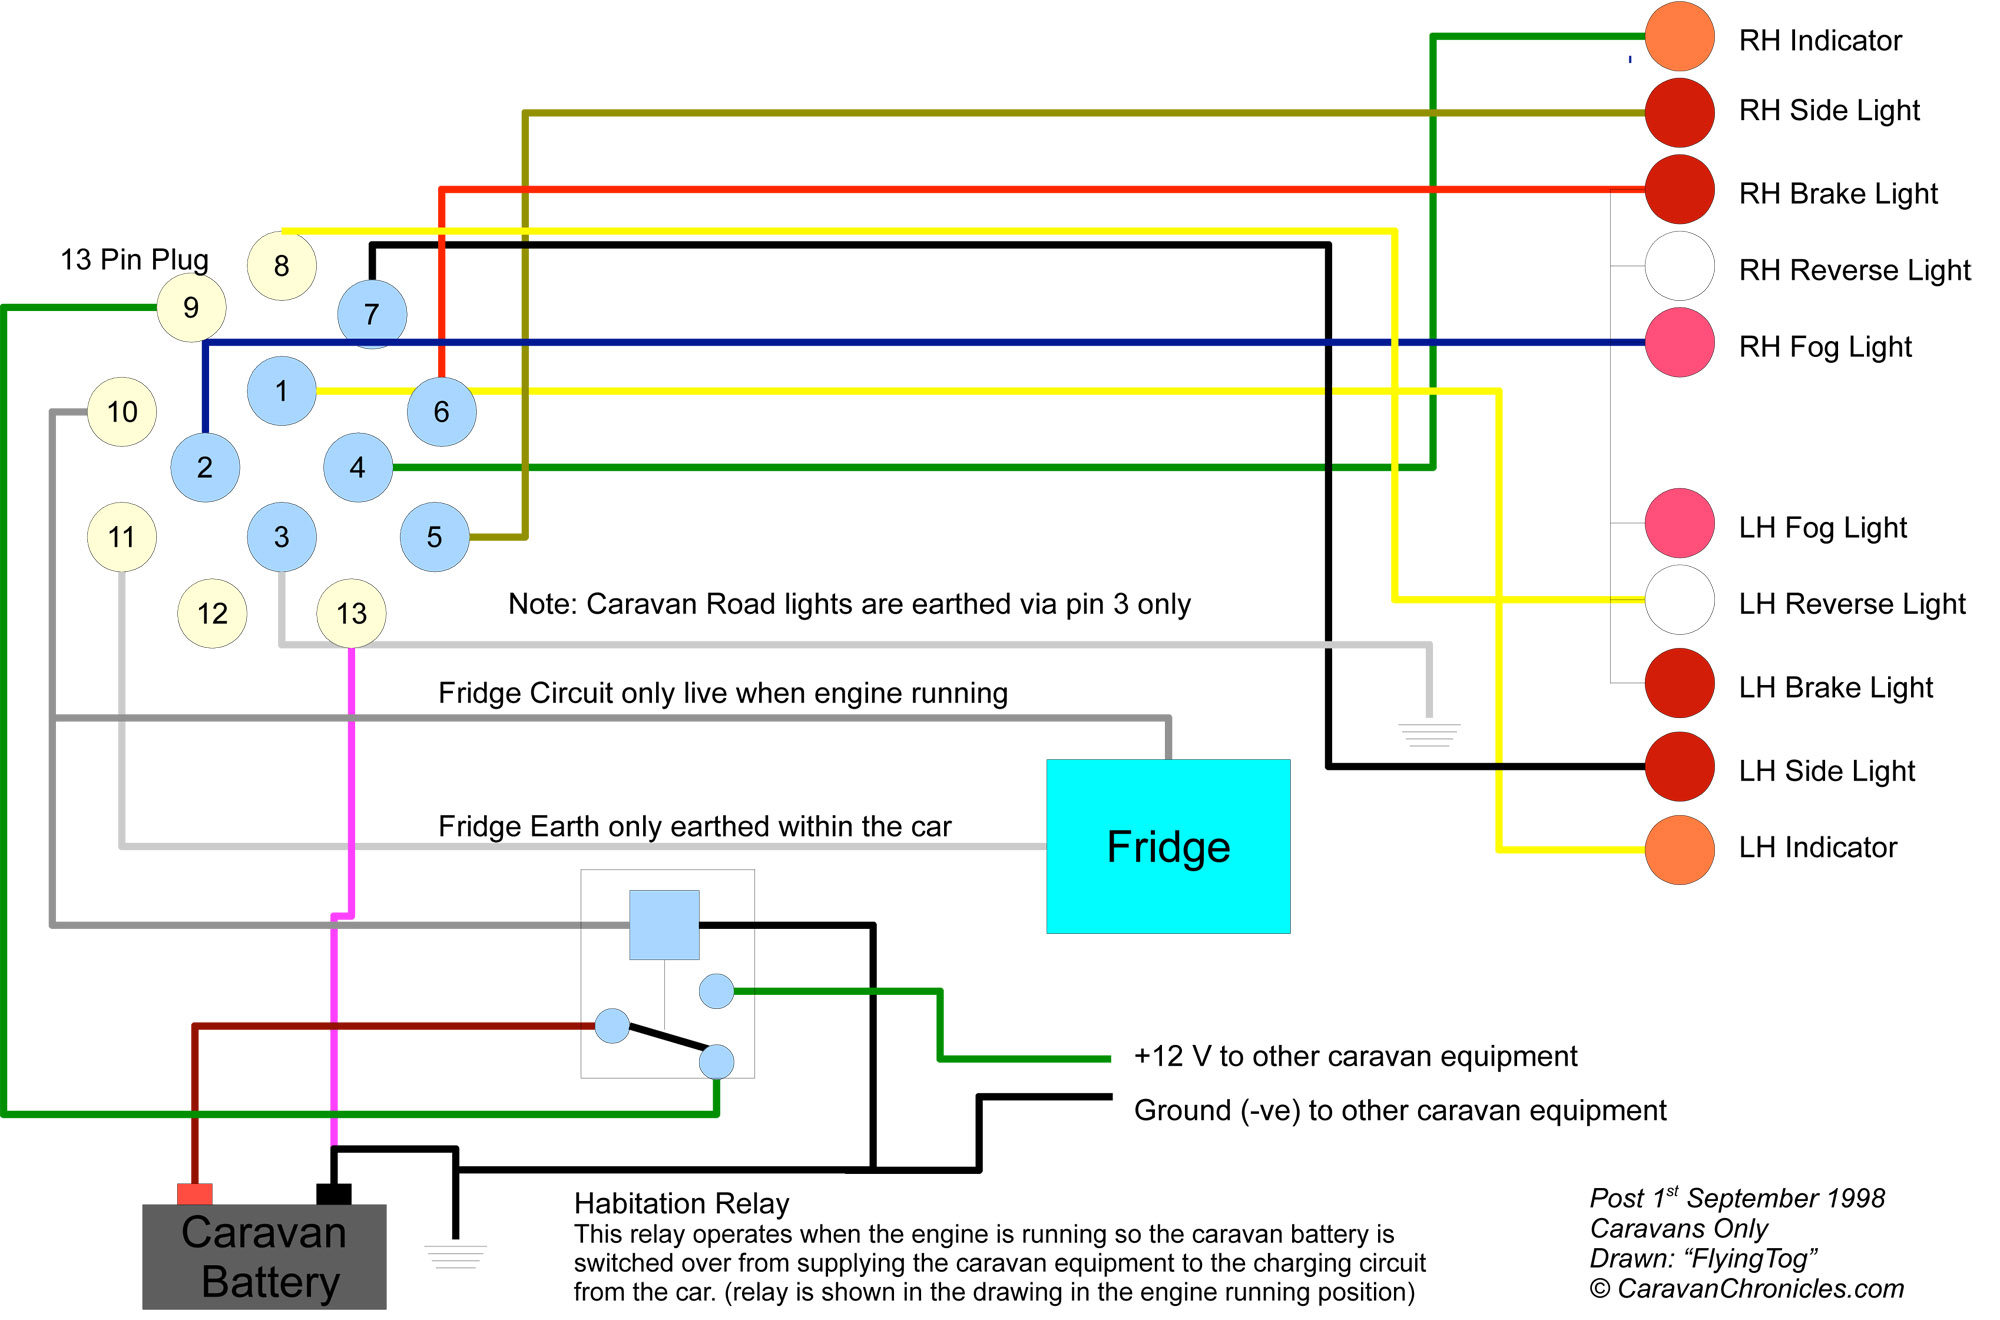 [DIAGRAM_38ZD]  DIAGRAM] 12 Volt House Wiring Diagram Diagrams Caravan FULL Version HD  Quality Diagrams Caravan - DDWIRING.LES-CAFES-DERIC-ORLEANS.FR | Dc Volt Trailer Wiring Diagrams |  | Best Diagram Database